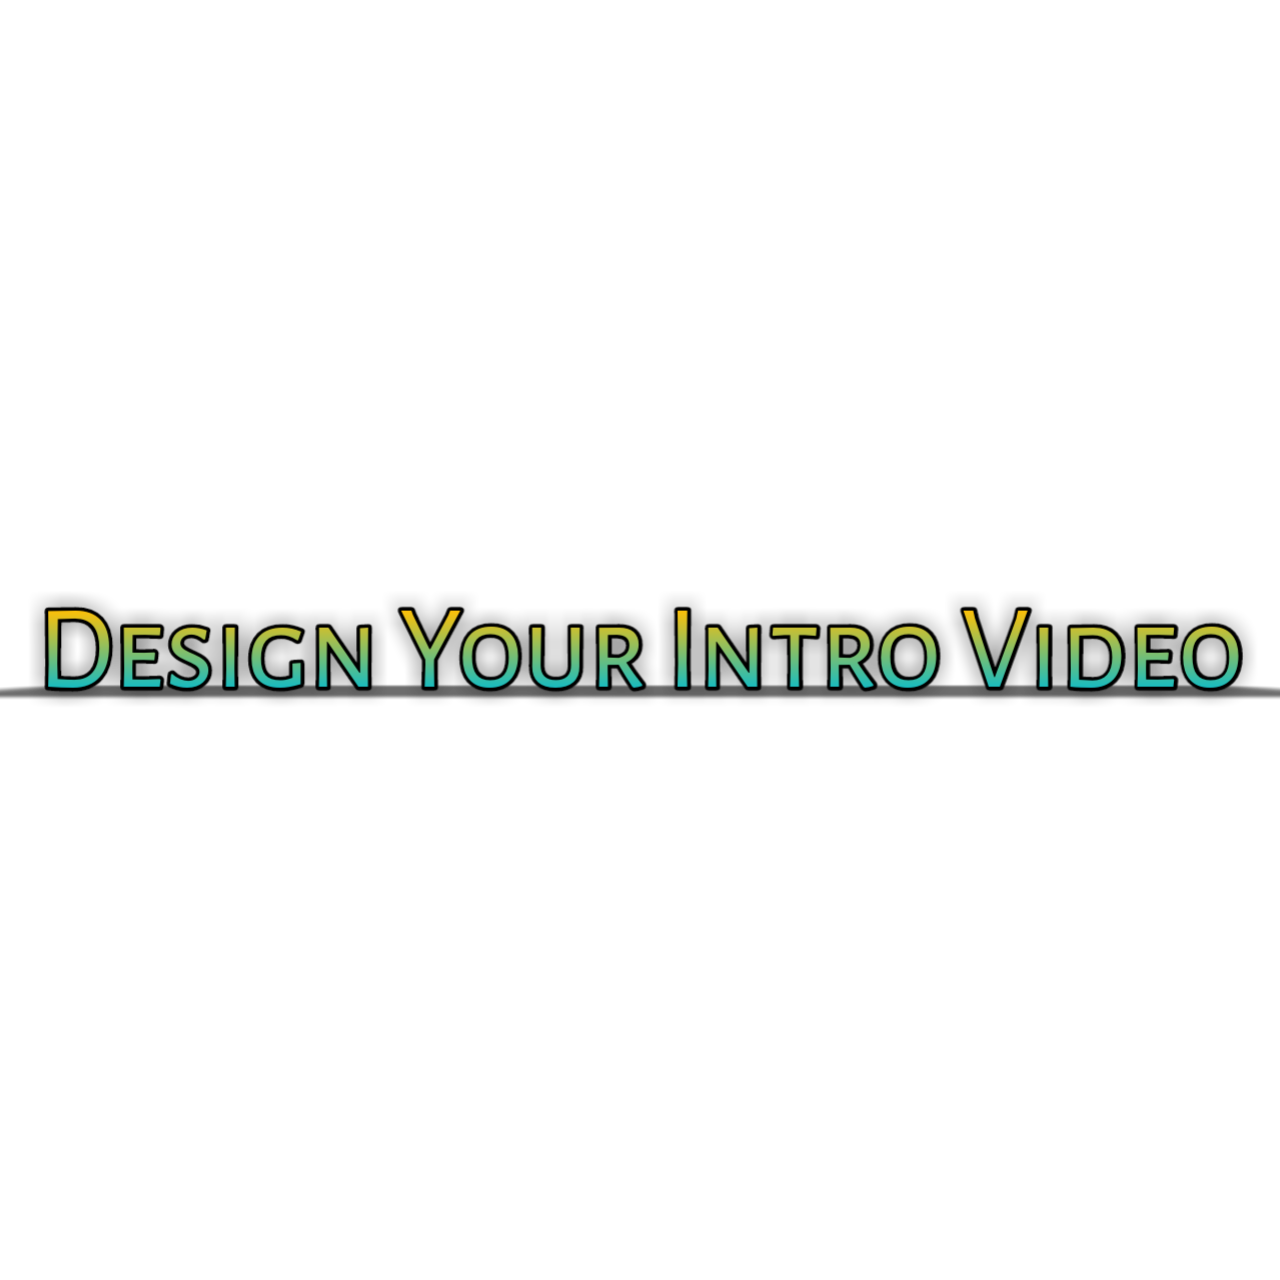 Make your animation intro video